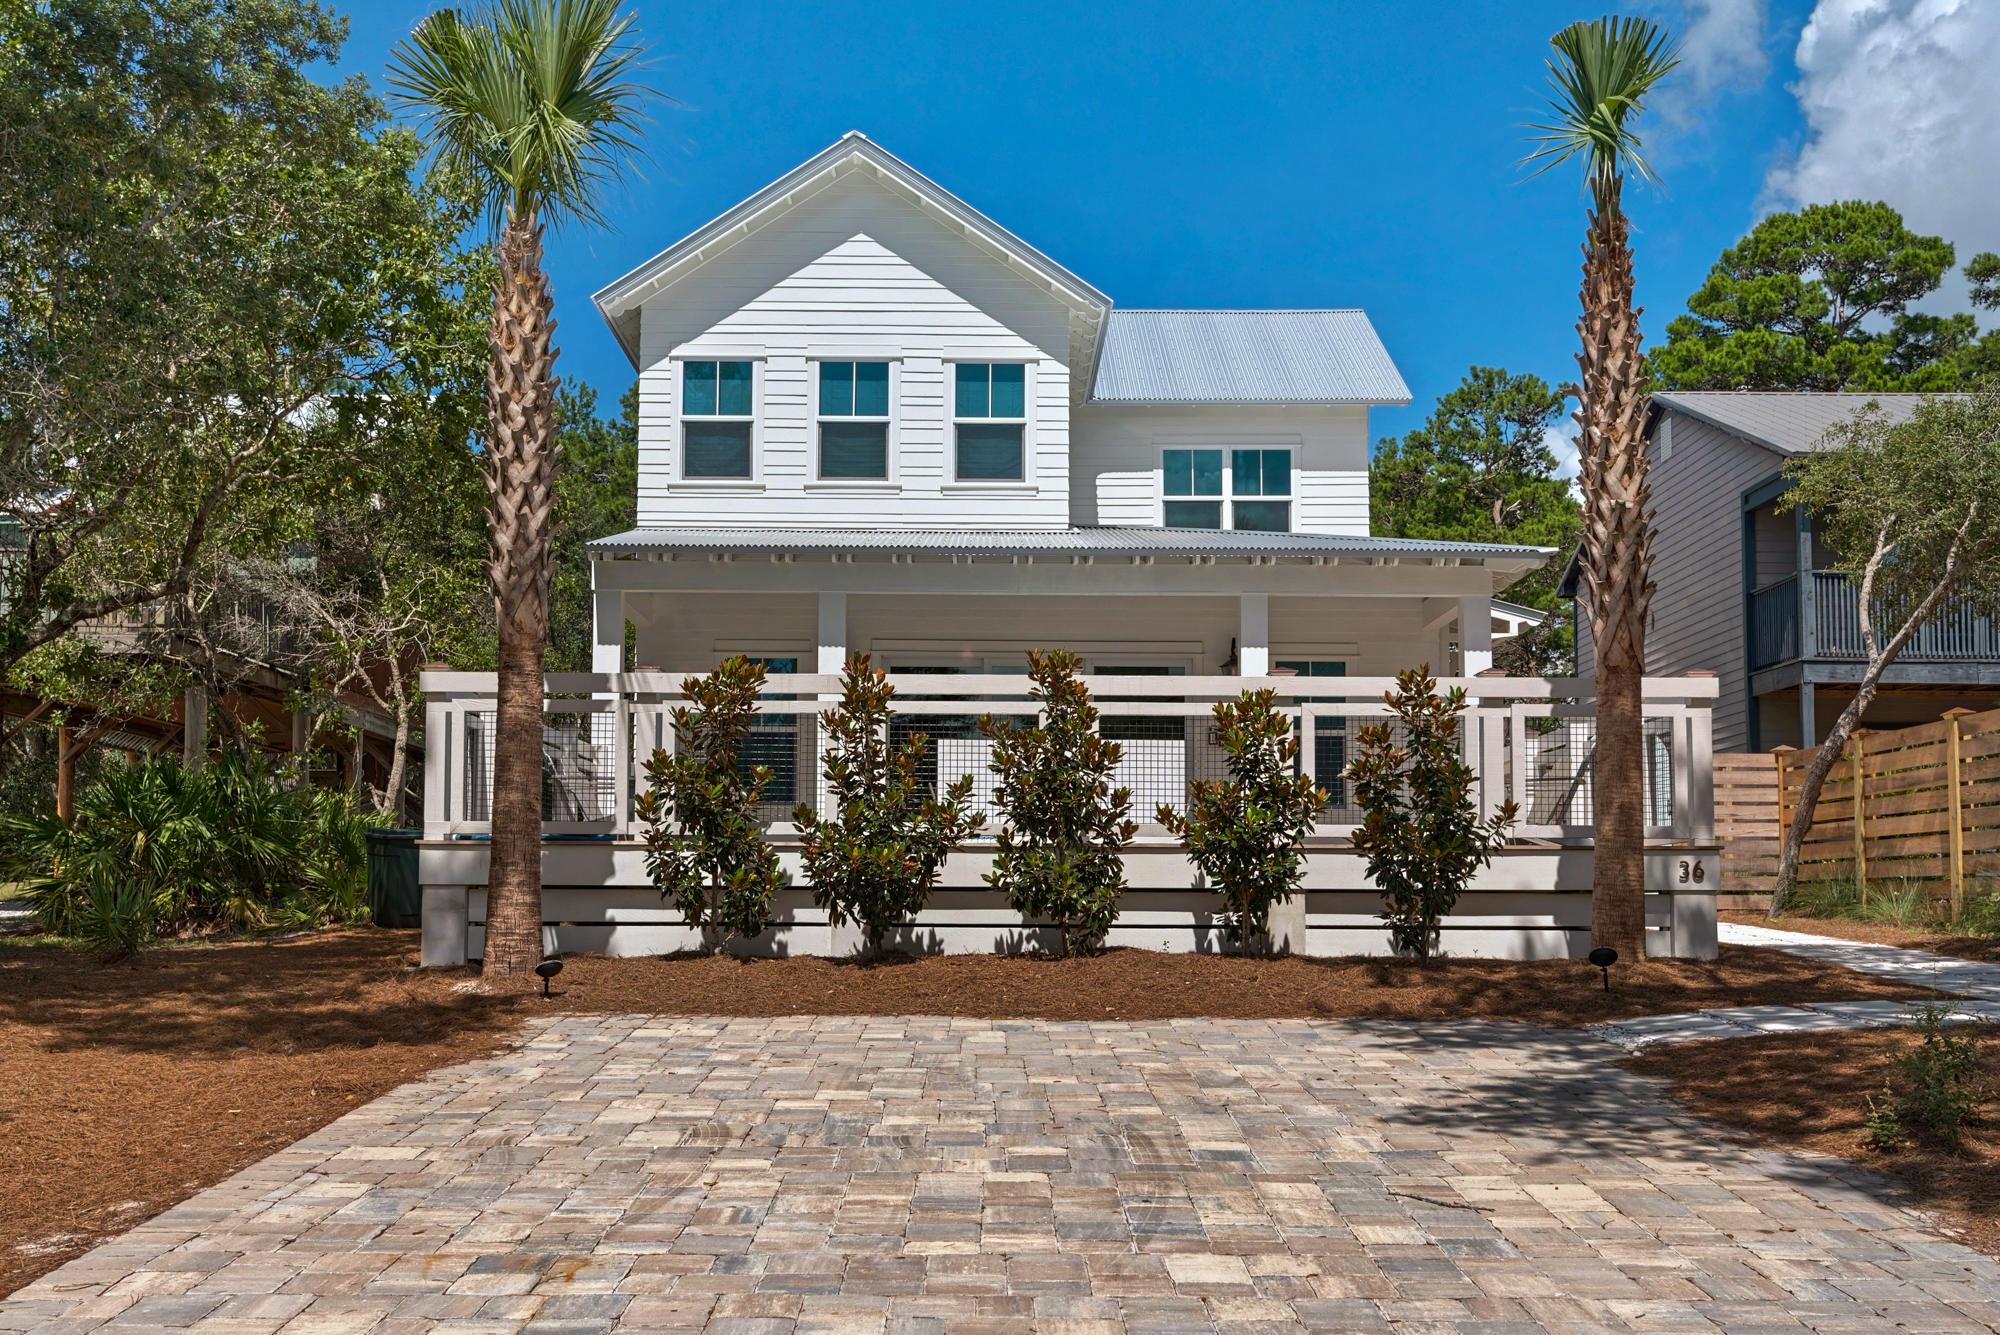 Welcome to Searenity, a beautiful coastal home with private pool south of 30A in Seagrove! Lounge by